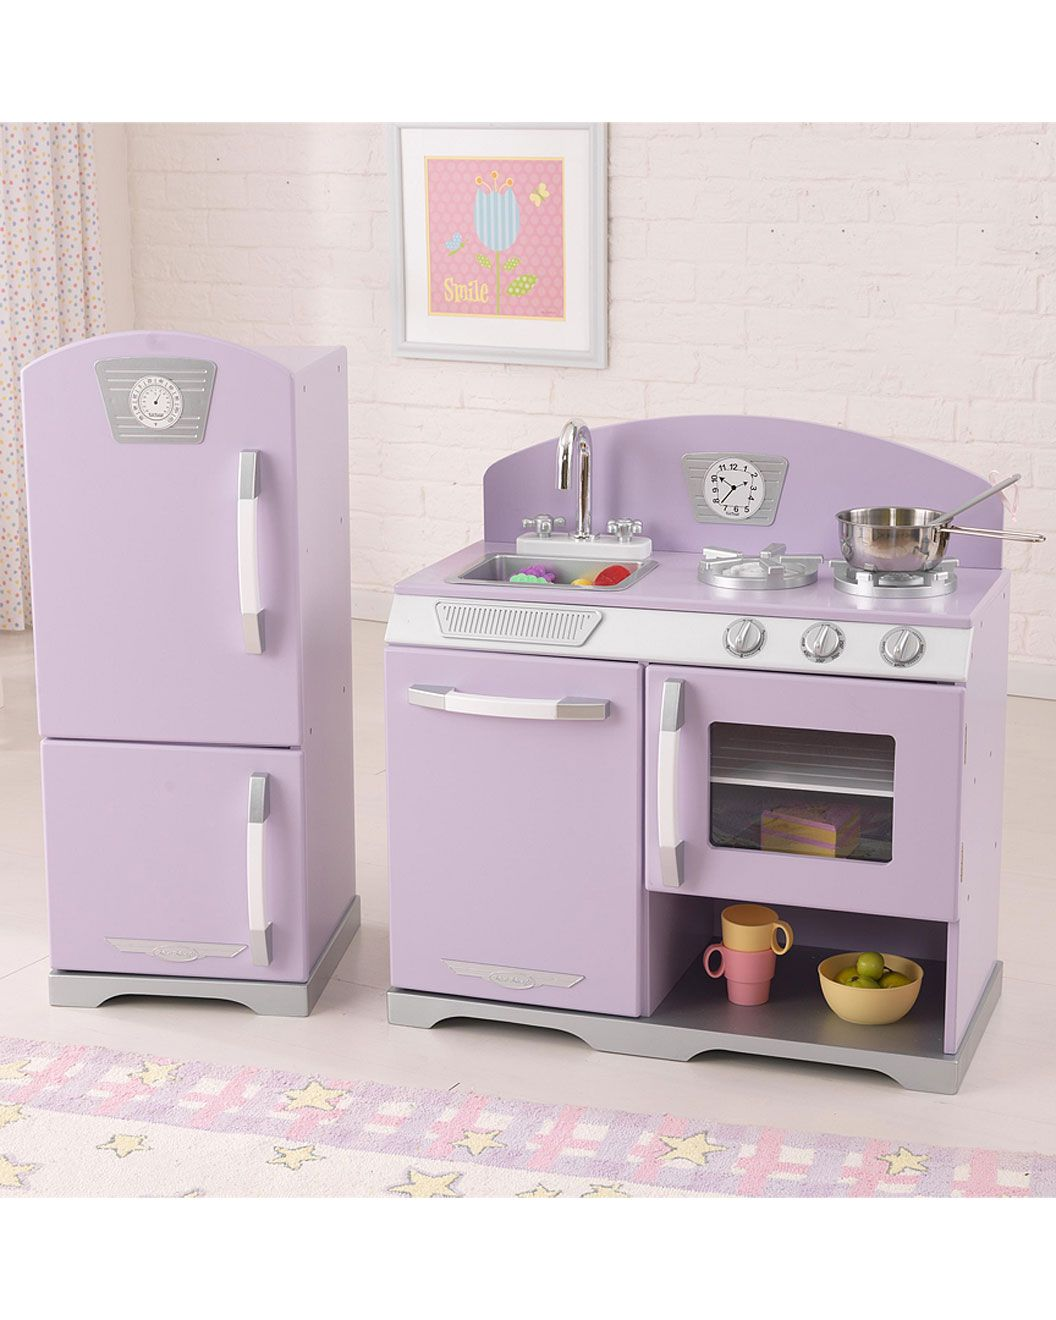 KidKraft Retro Kitchen & Refrigerator on Rue La La. | For Little ...